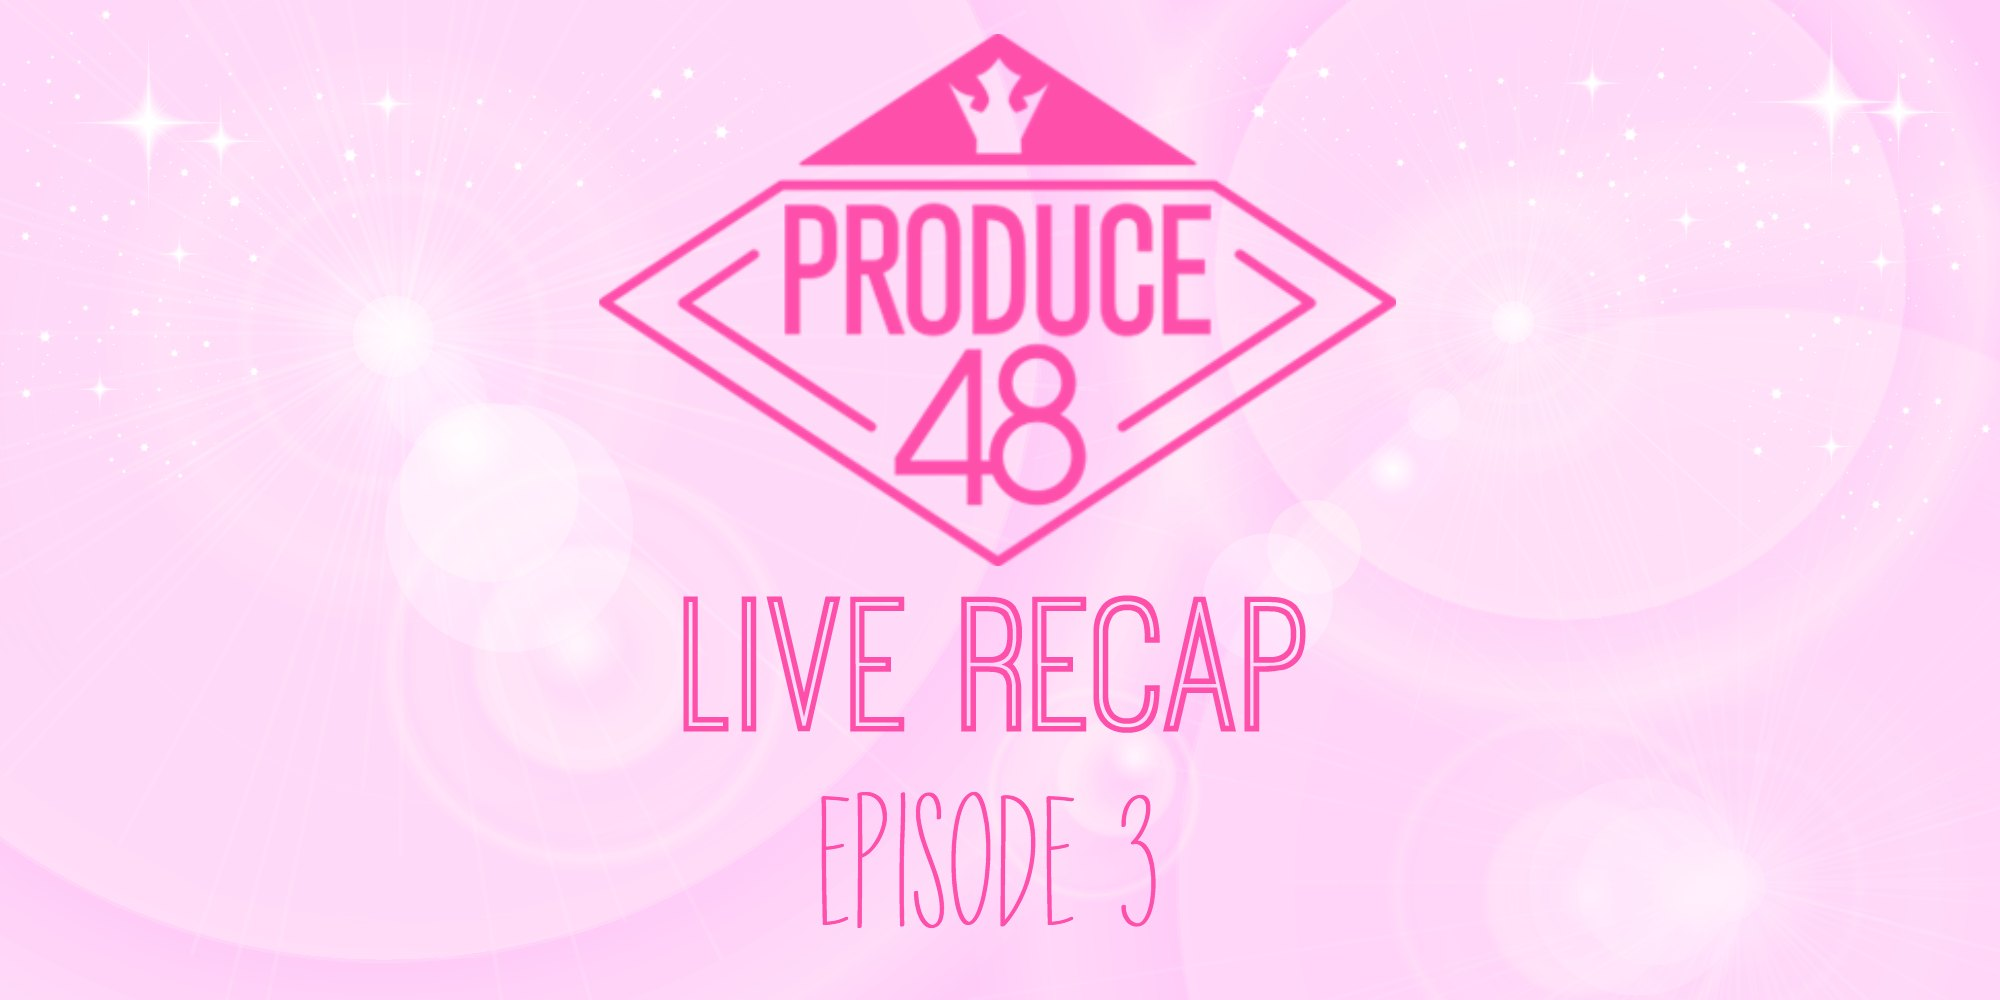 Episode 3 English translation Live Recap Produce 48